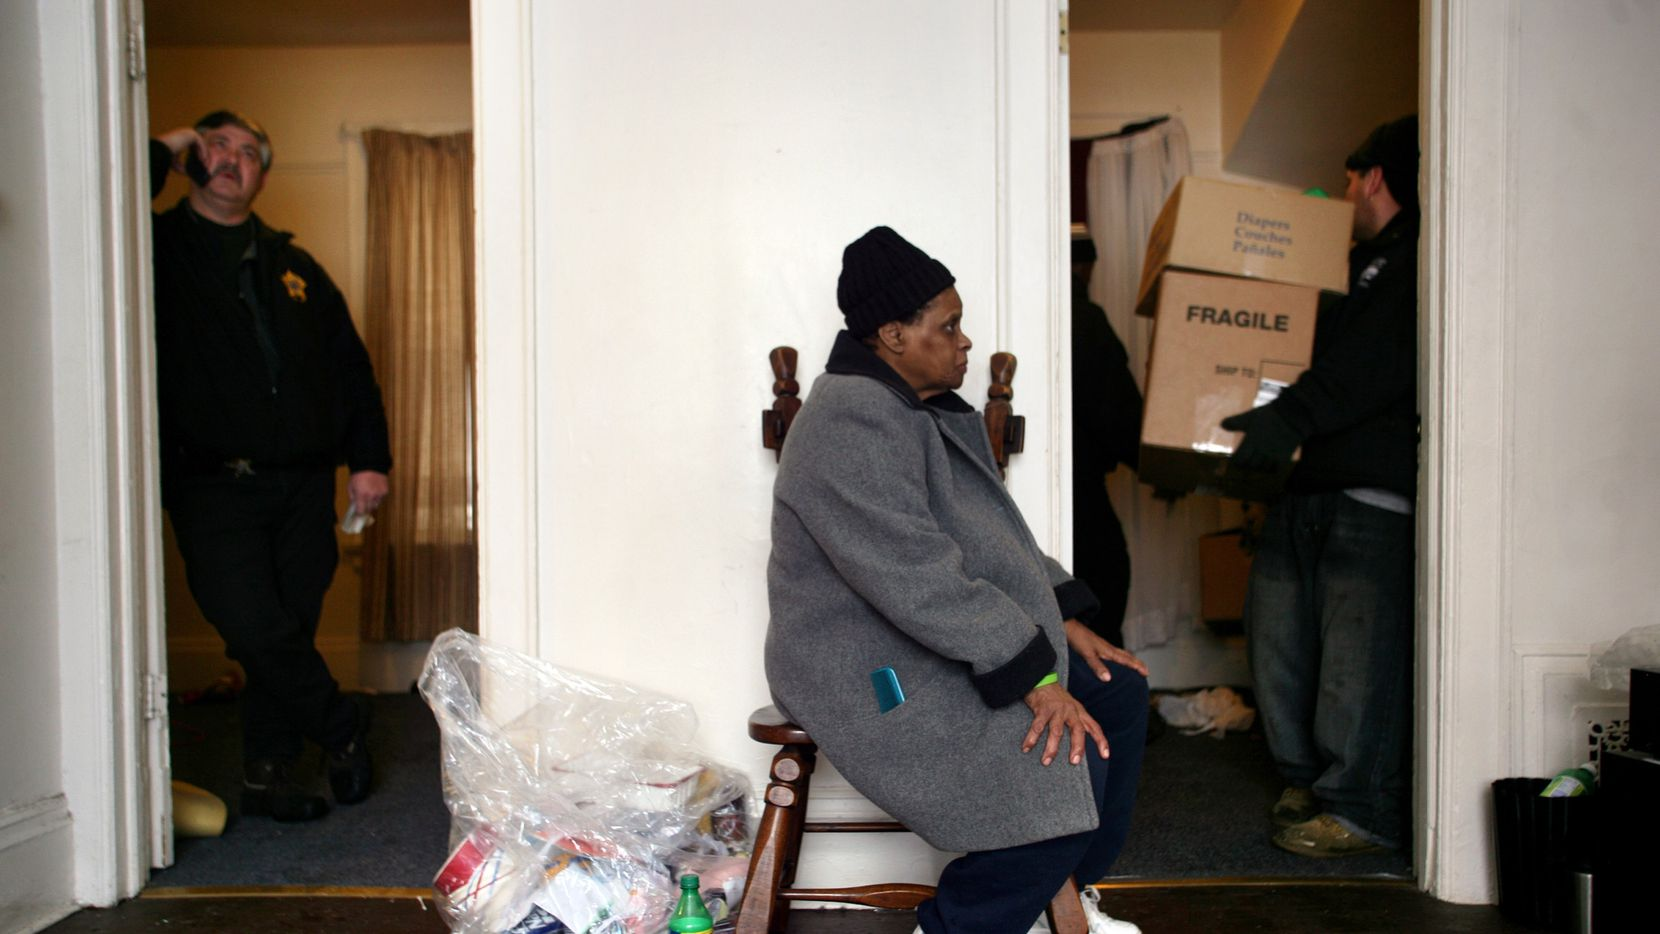 Gloria Rhodes, 64, watches as employees of Eagle Moving and Storage Company remove the furniture and belongings from the apartment she shared with her daughter, Ara Sparkman in Milwaukee, Wis., in February 2010. Here and in swaths of many cities, evictions from rental properties are so common that they are part of the texture of life. But new research is showing that eviction is a particular burden on low-income black women, often single mothers, who are more likely than men to rent apartments and more vulnerable to losing them, in part because their wages or welfare payments have not risen with the cost of housing. And evictions can easily throw families into cascades of turmoil and debt. (Sally Ryan/The New York Times)